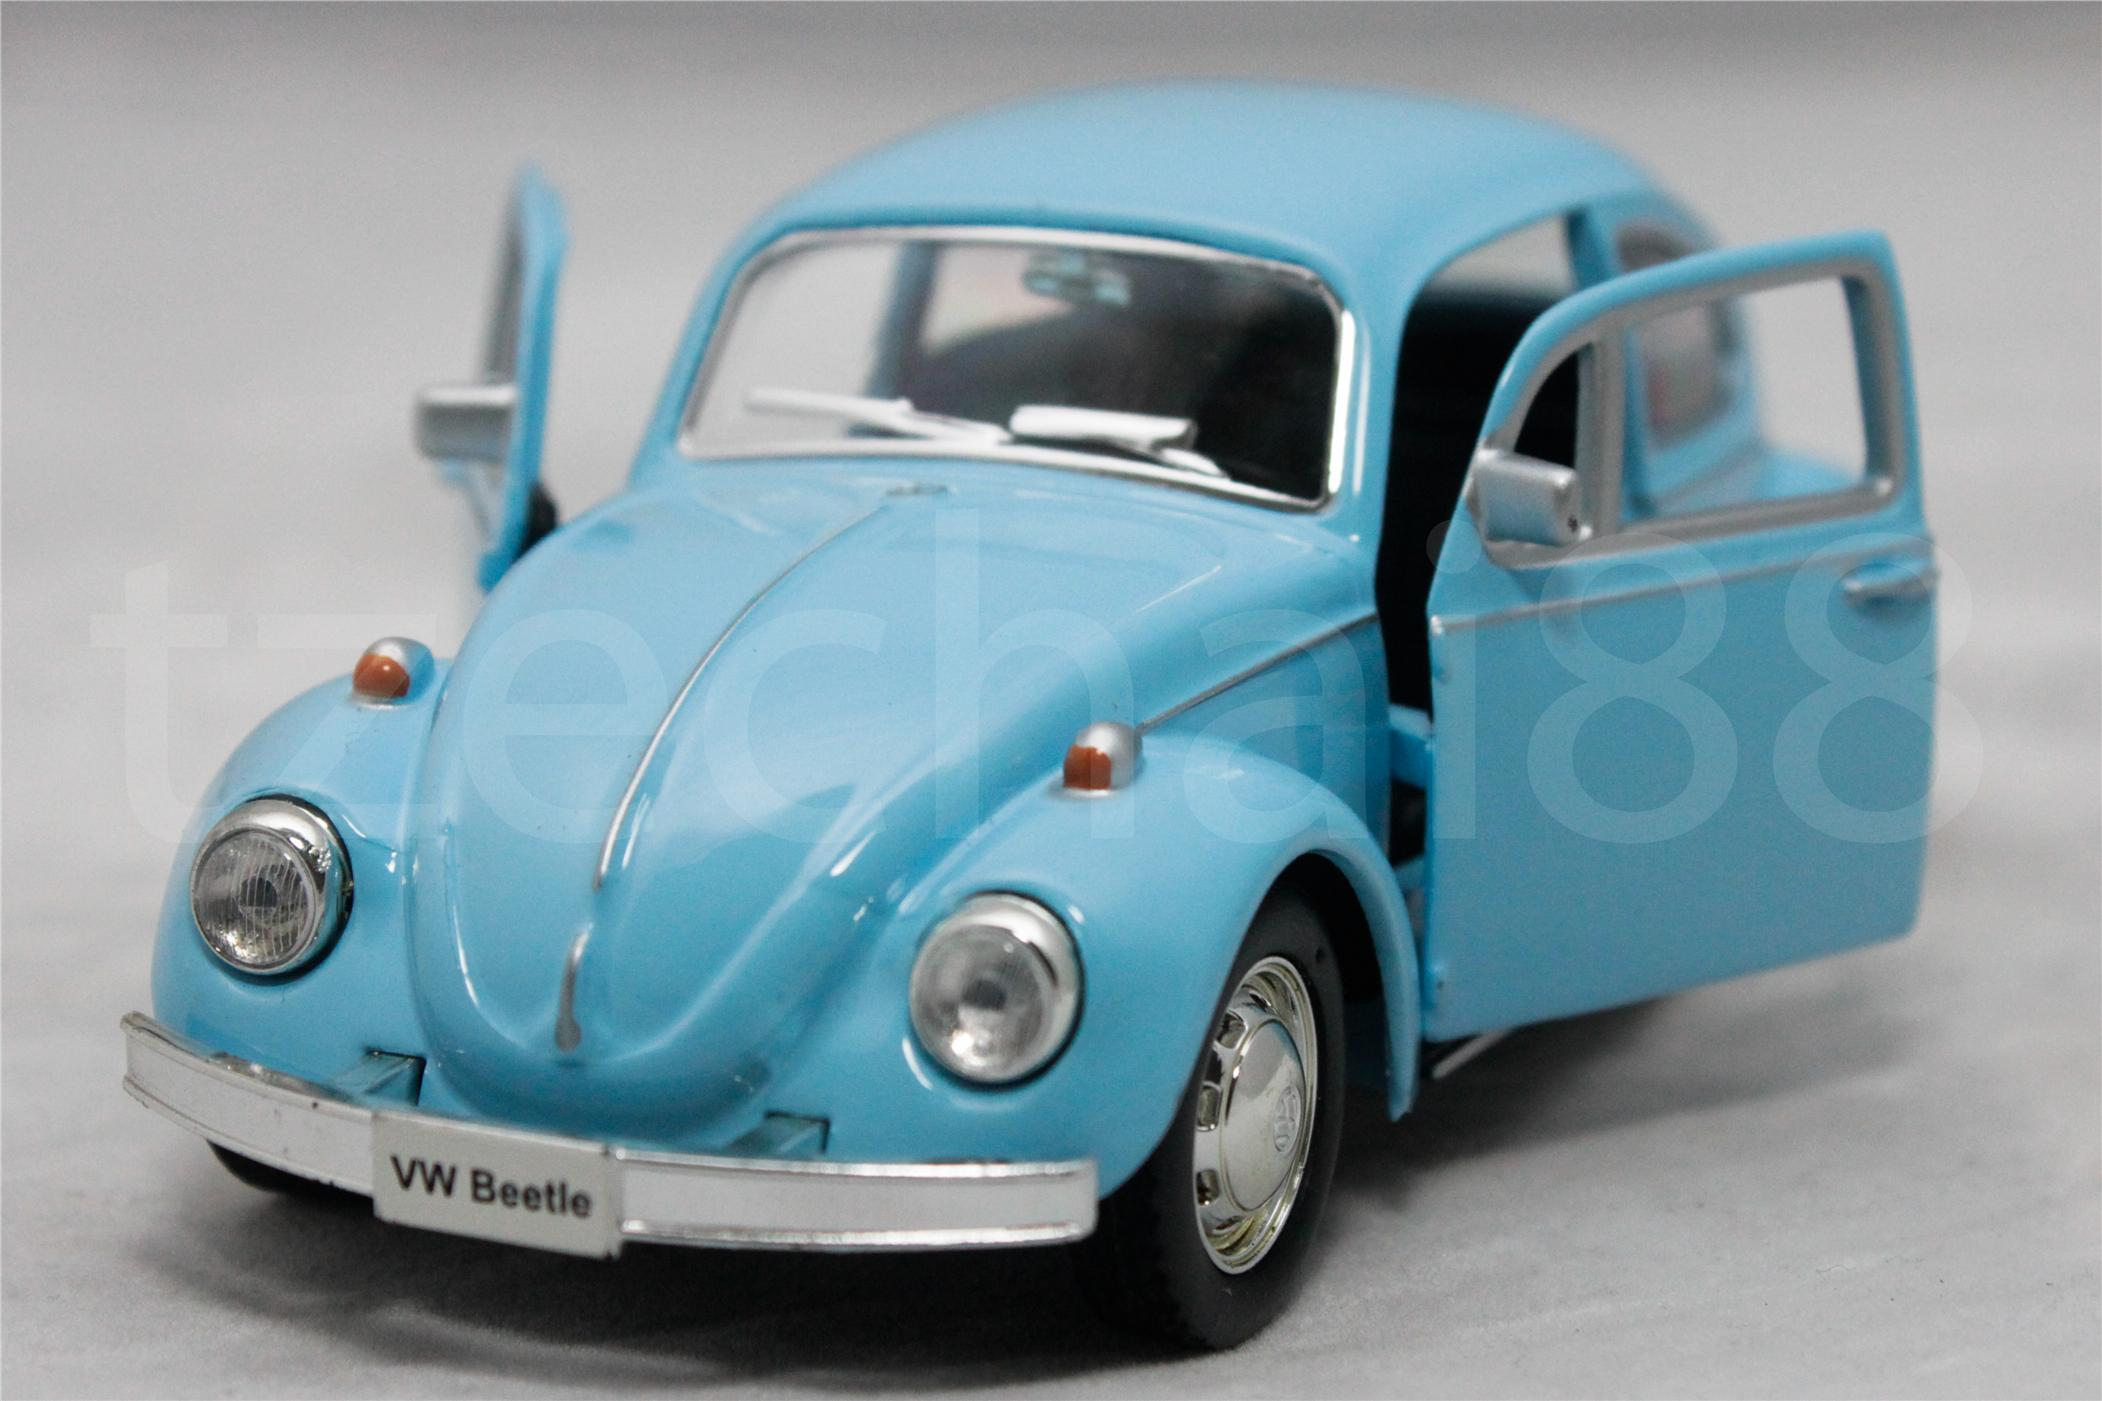 RMZ CITY DIECAST 1:36 CAR VOLKSWAGEN BEETLE BLUE COLLECTION NEW GIFT